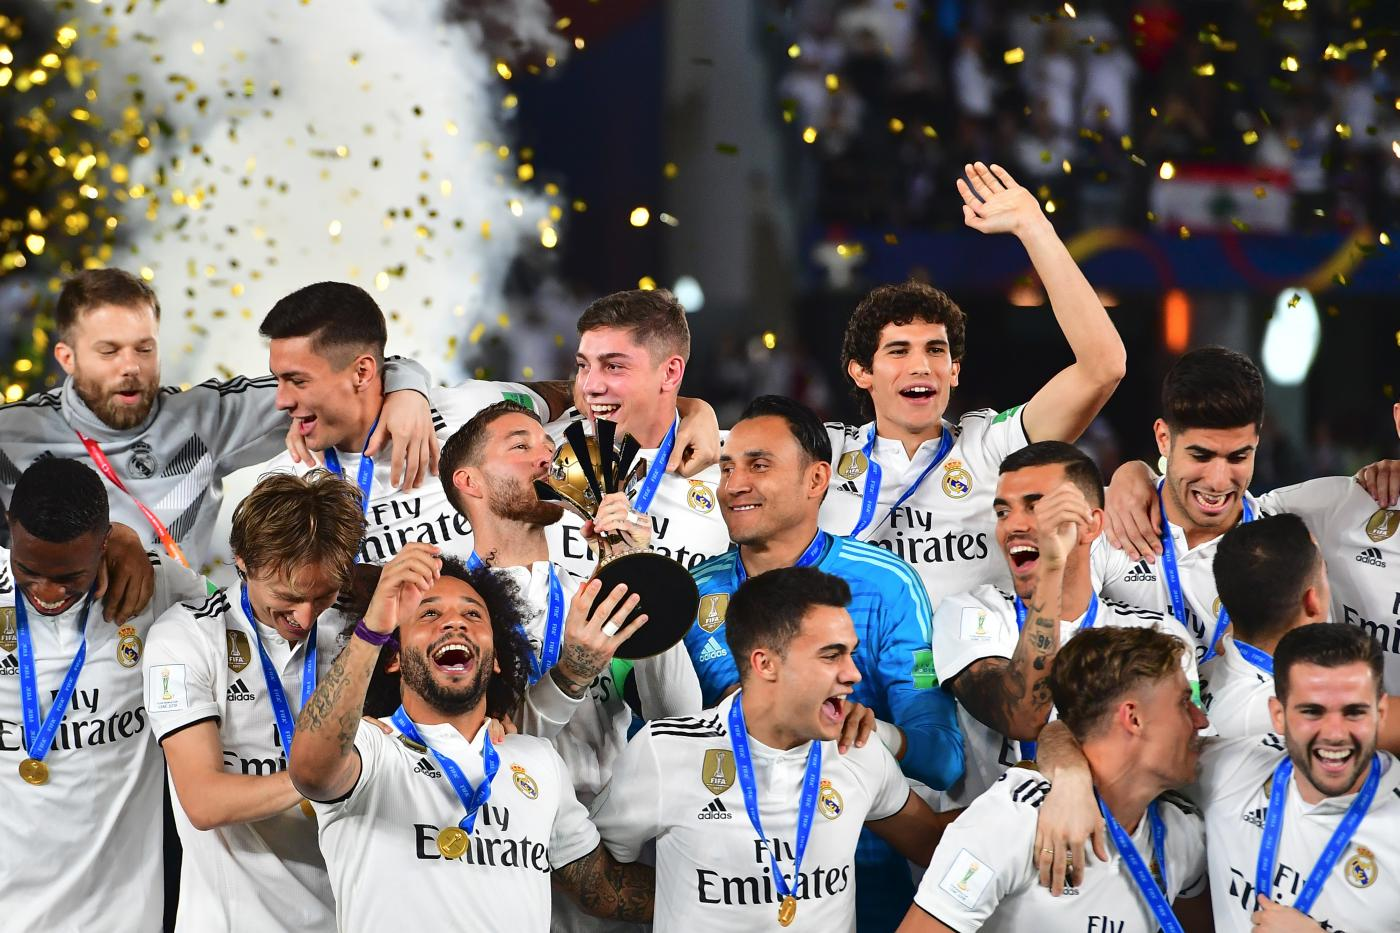 Fifa World Cup Awards 2020.Qatar To Host Club World Cup In 2019 And 2020 Middle East Eye